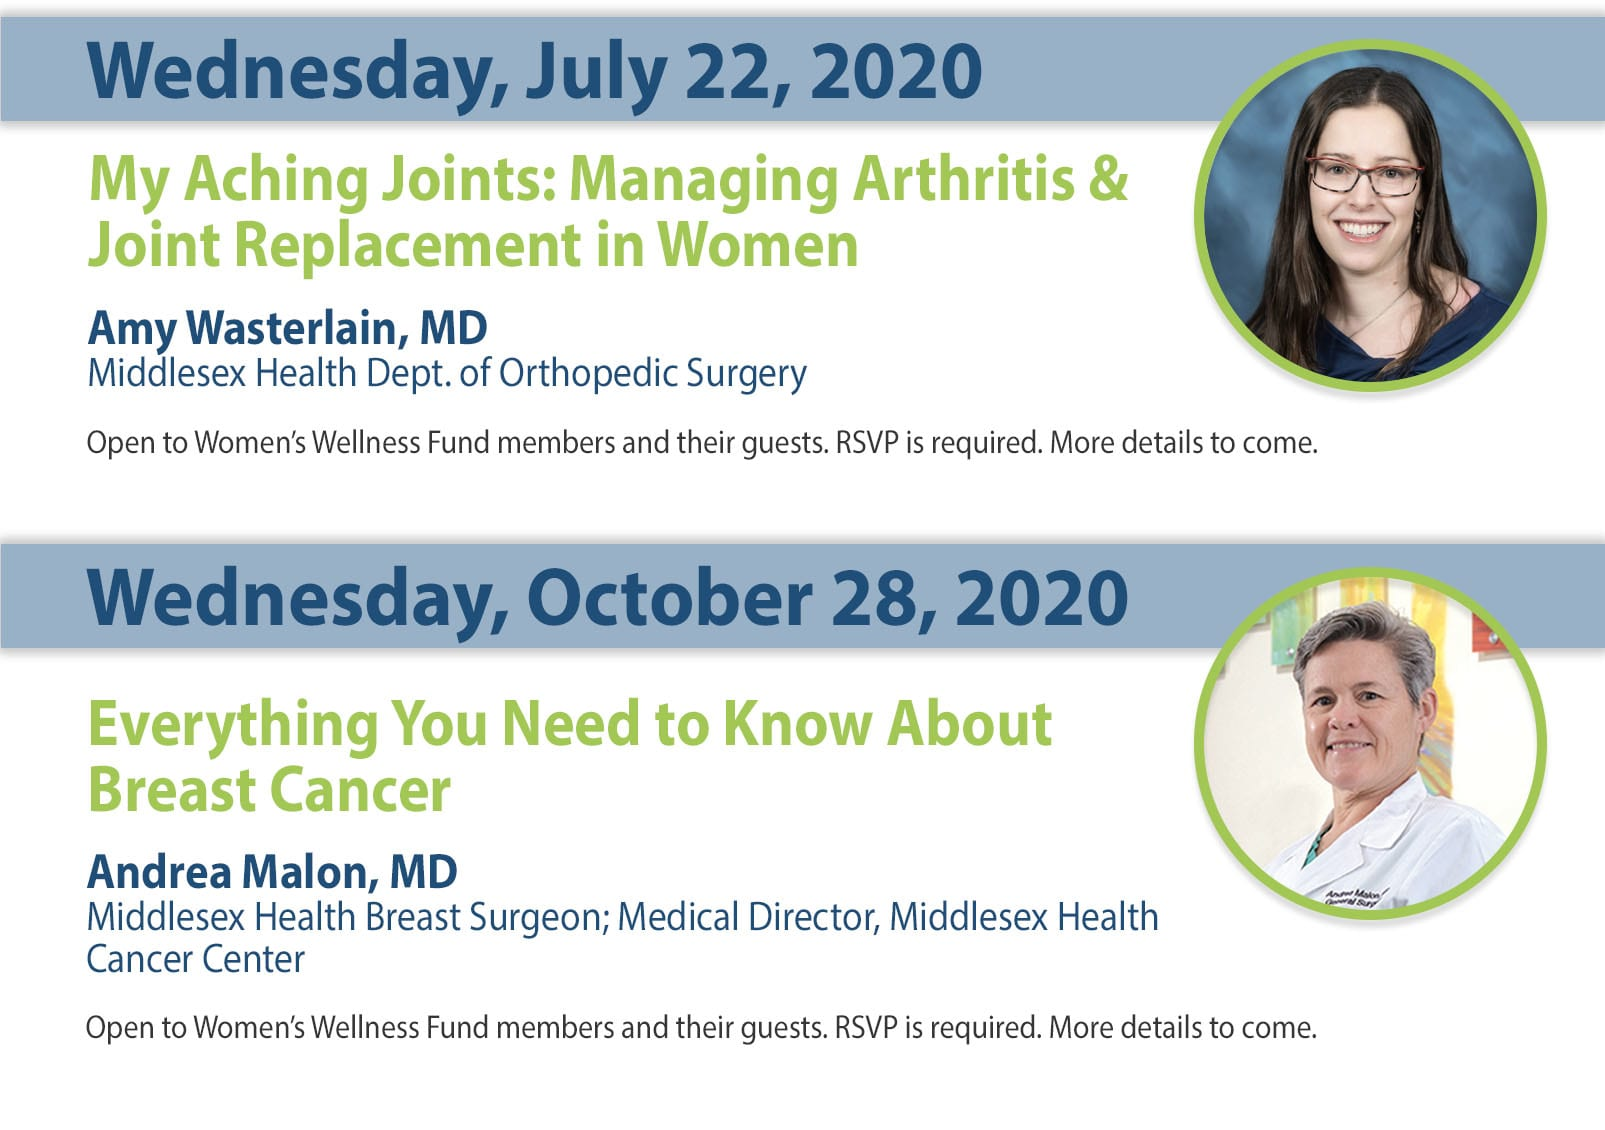 Dr. Amy Wasterlain on July 22 and Dr. Andrea Malon on October 28.